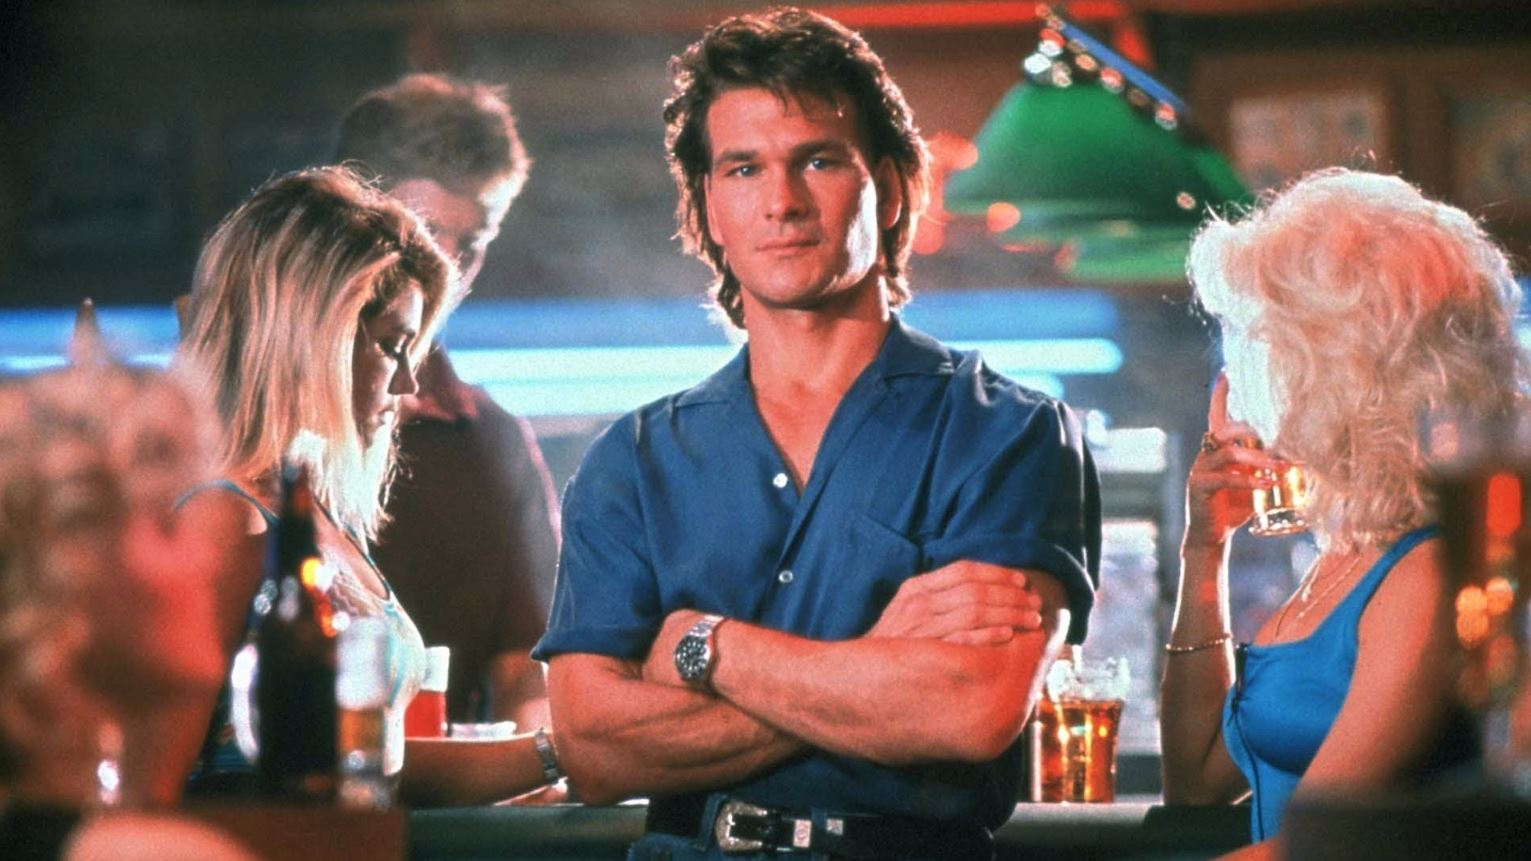 roadhouse1.JPG